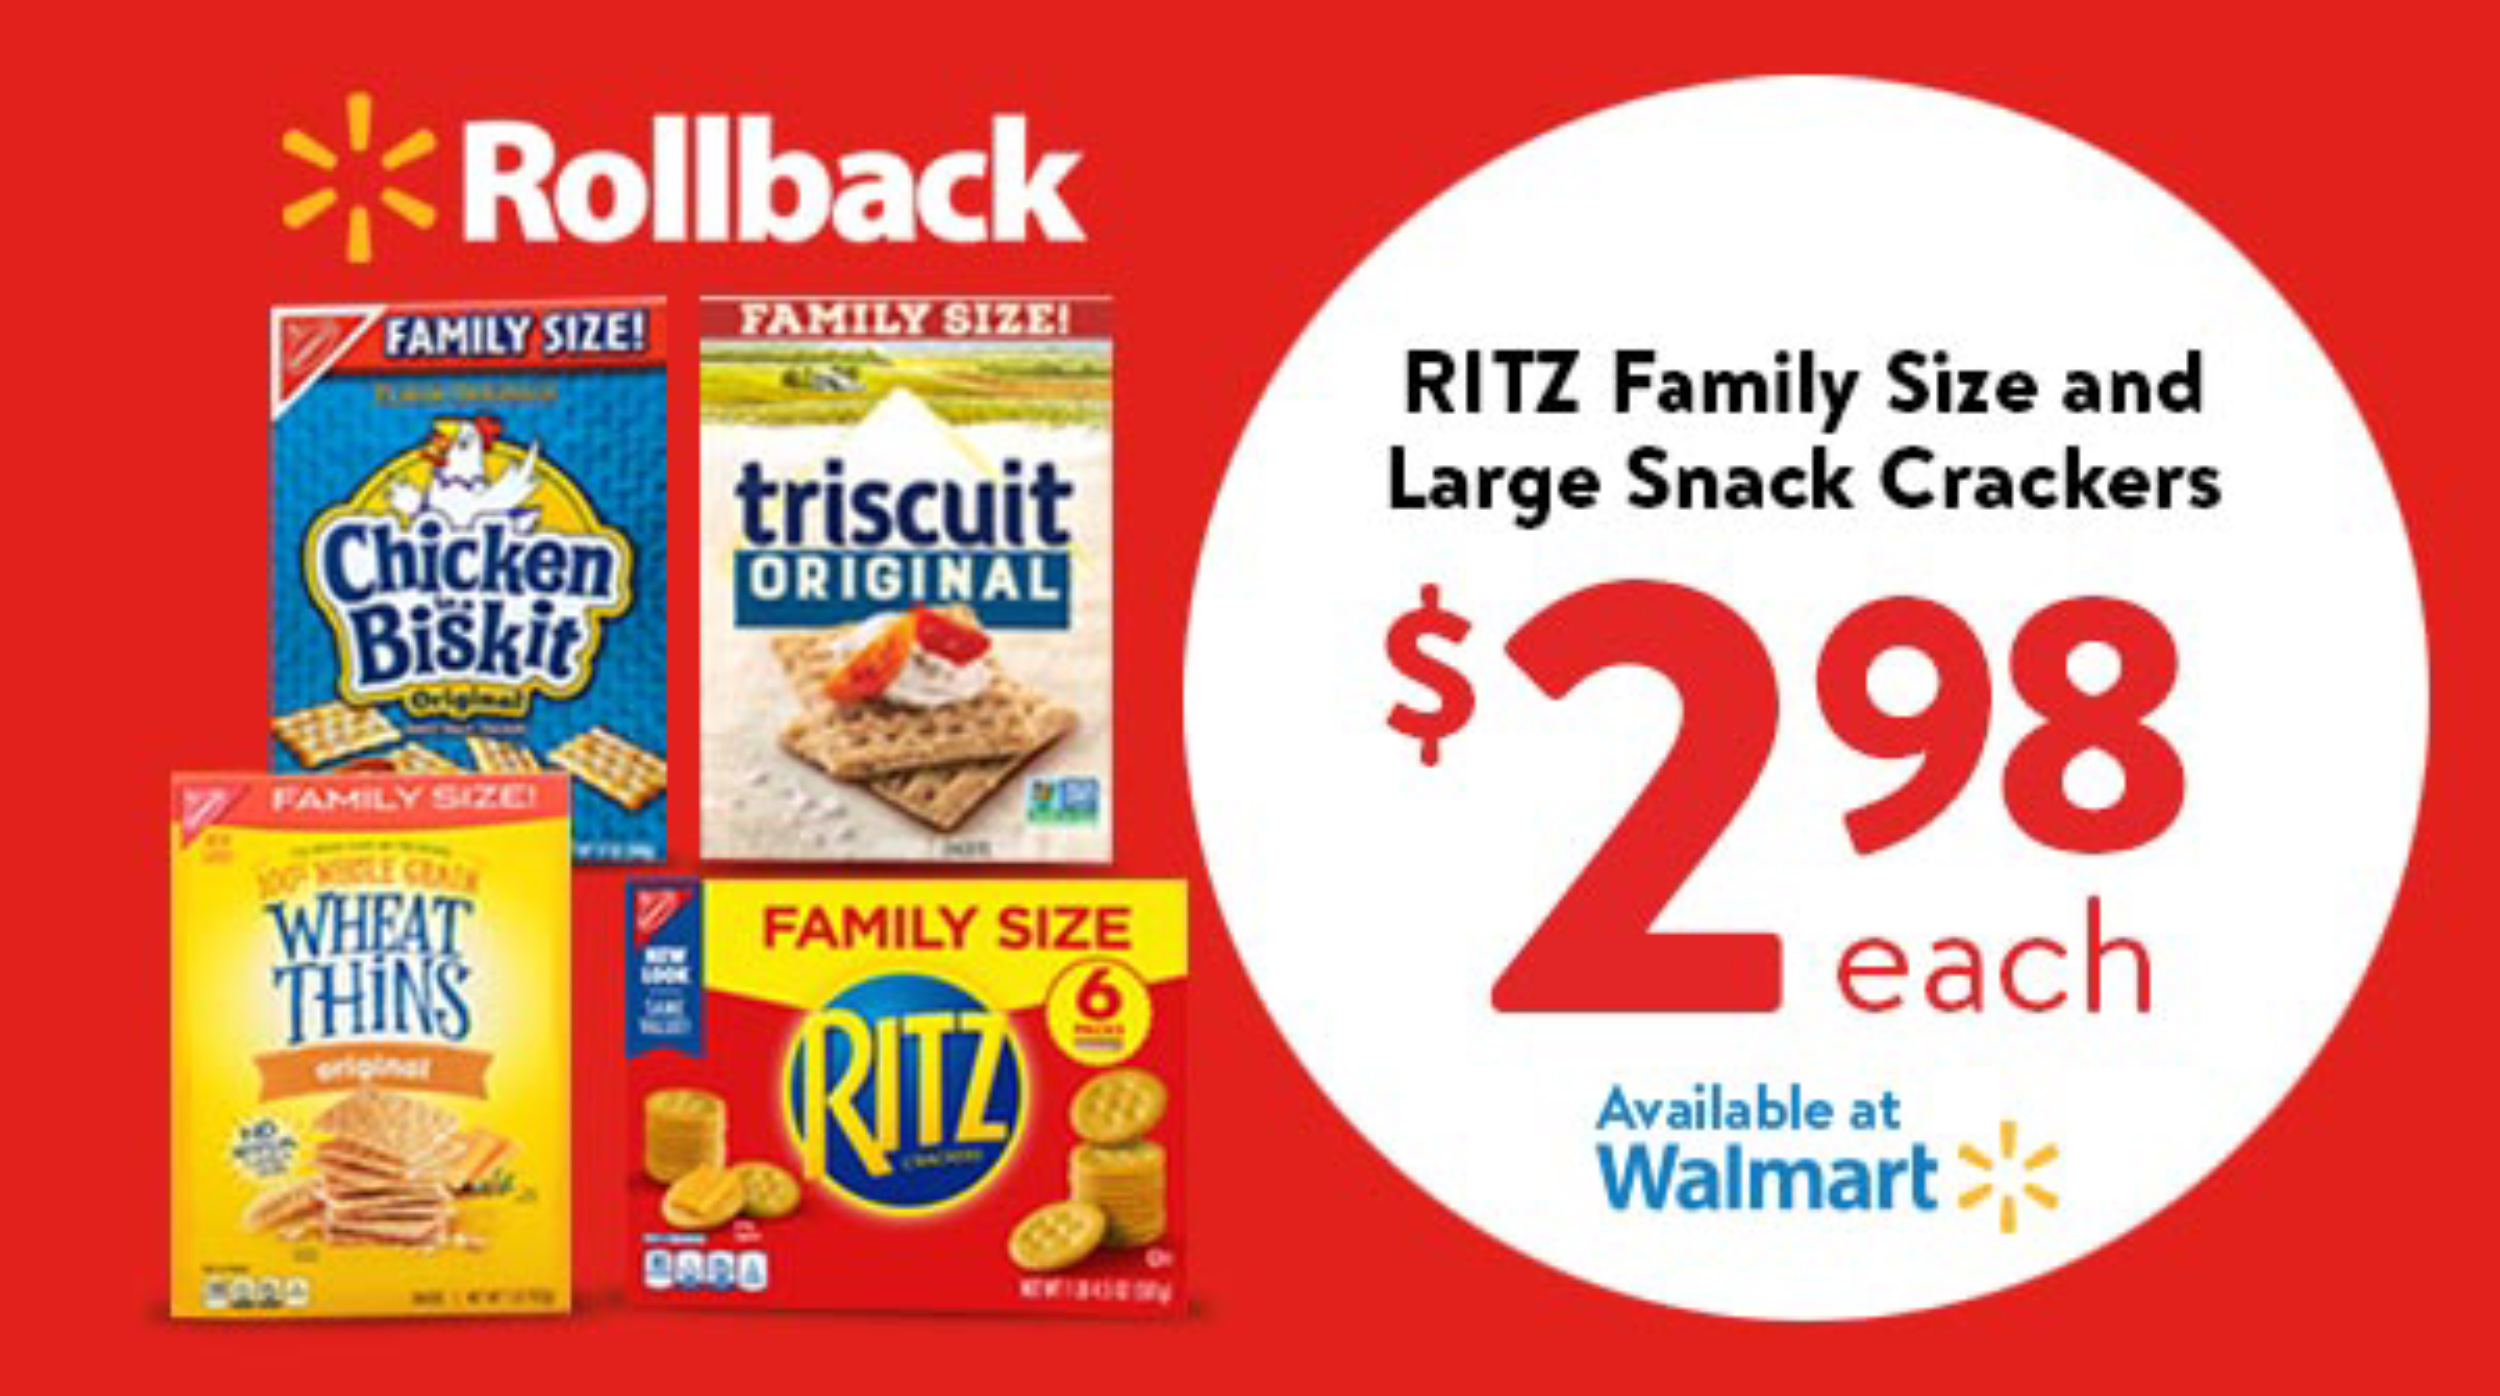 rollback offer at walmart on crackers.